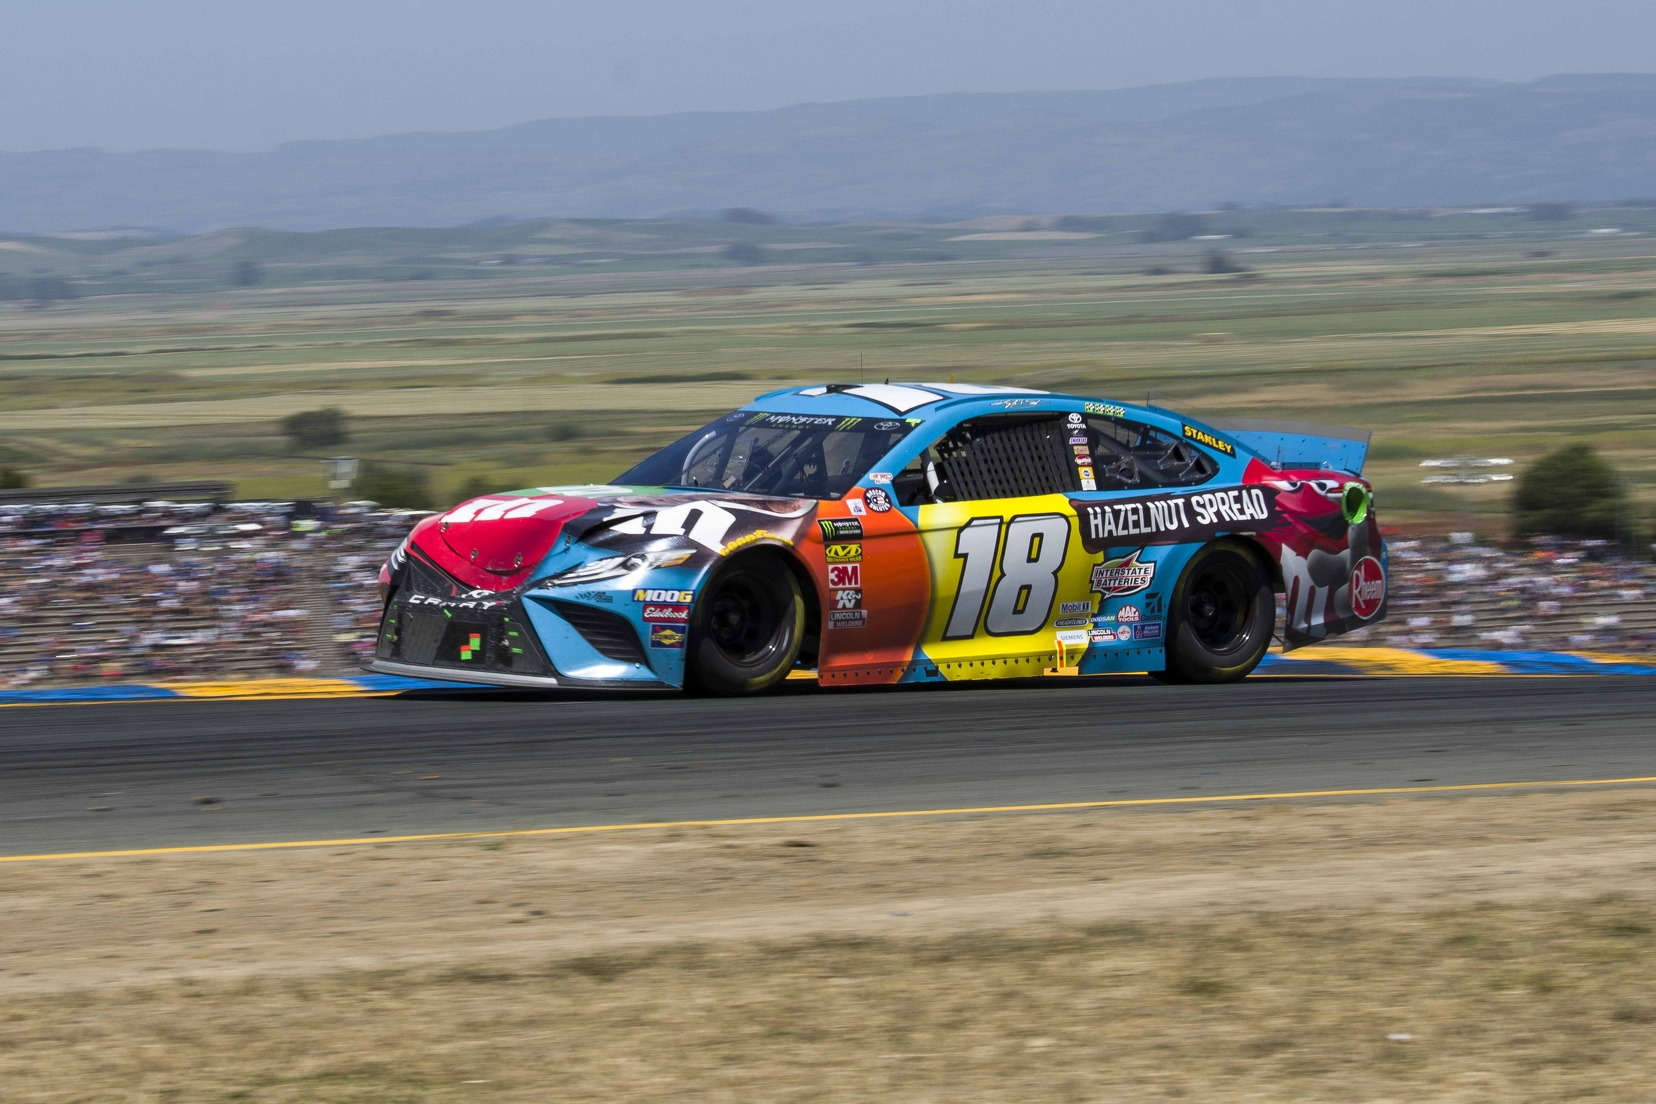 Kyle Busch closes the gap on teammate and leader Truex after front end damage from contact with Ryan Blaney. Photo courtesy of Patrick Sue-Chan for Speedway Media.